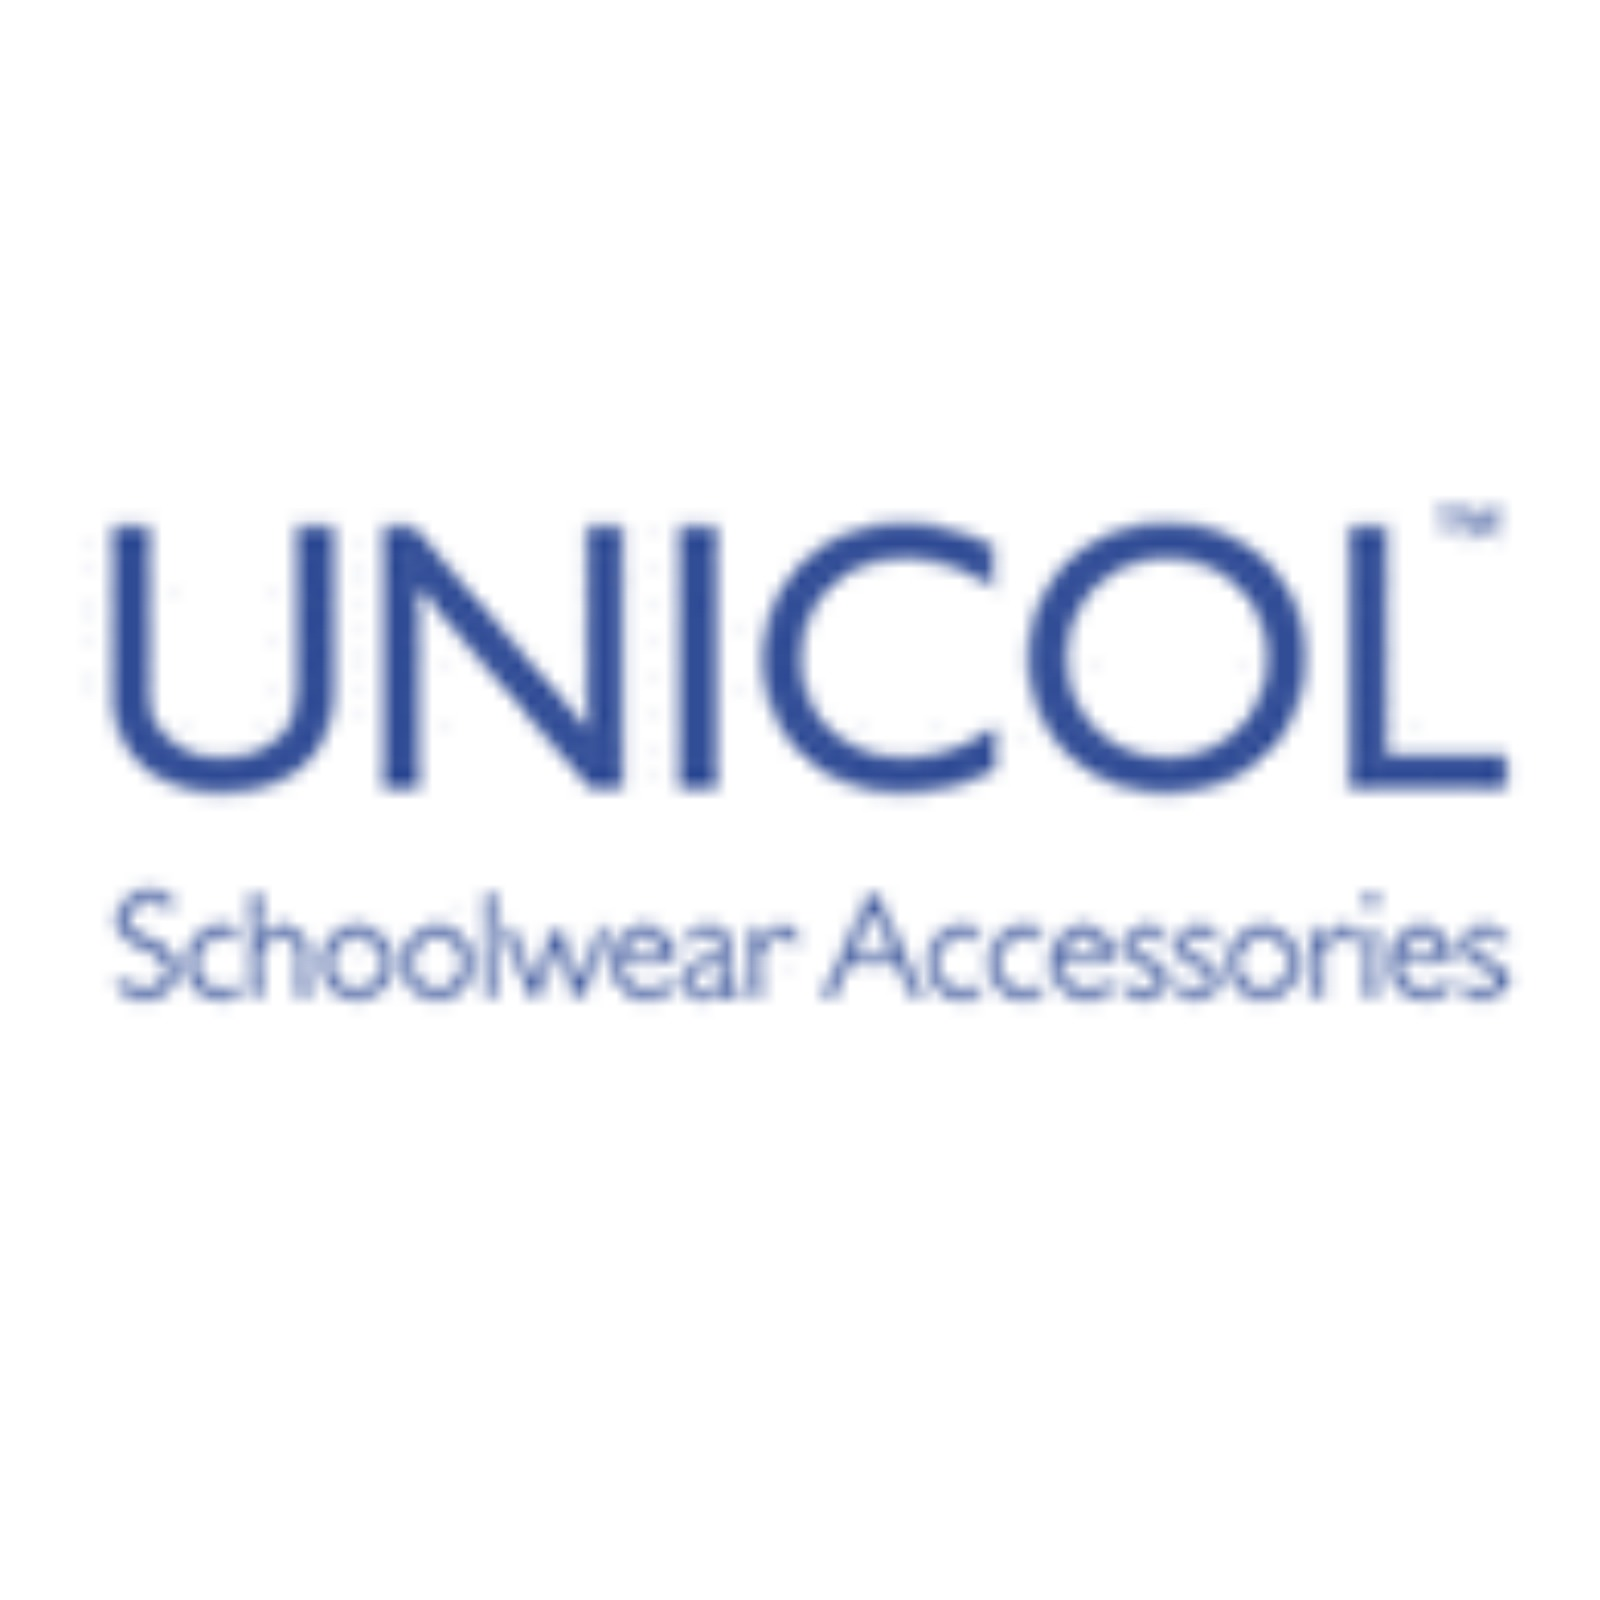 Unicol provide high quality school wear accessorie items such as painting aprons and lab coats